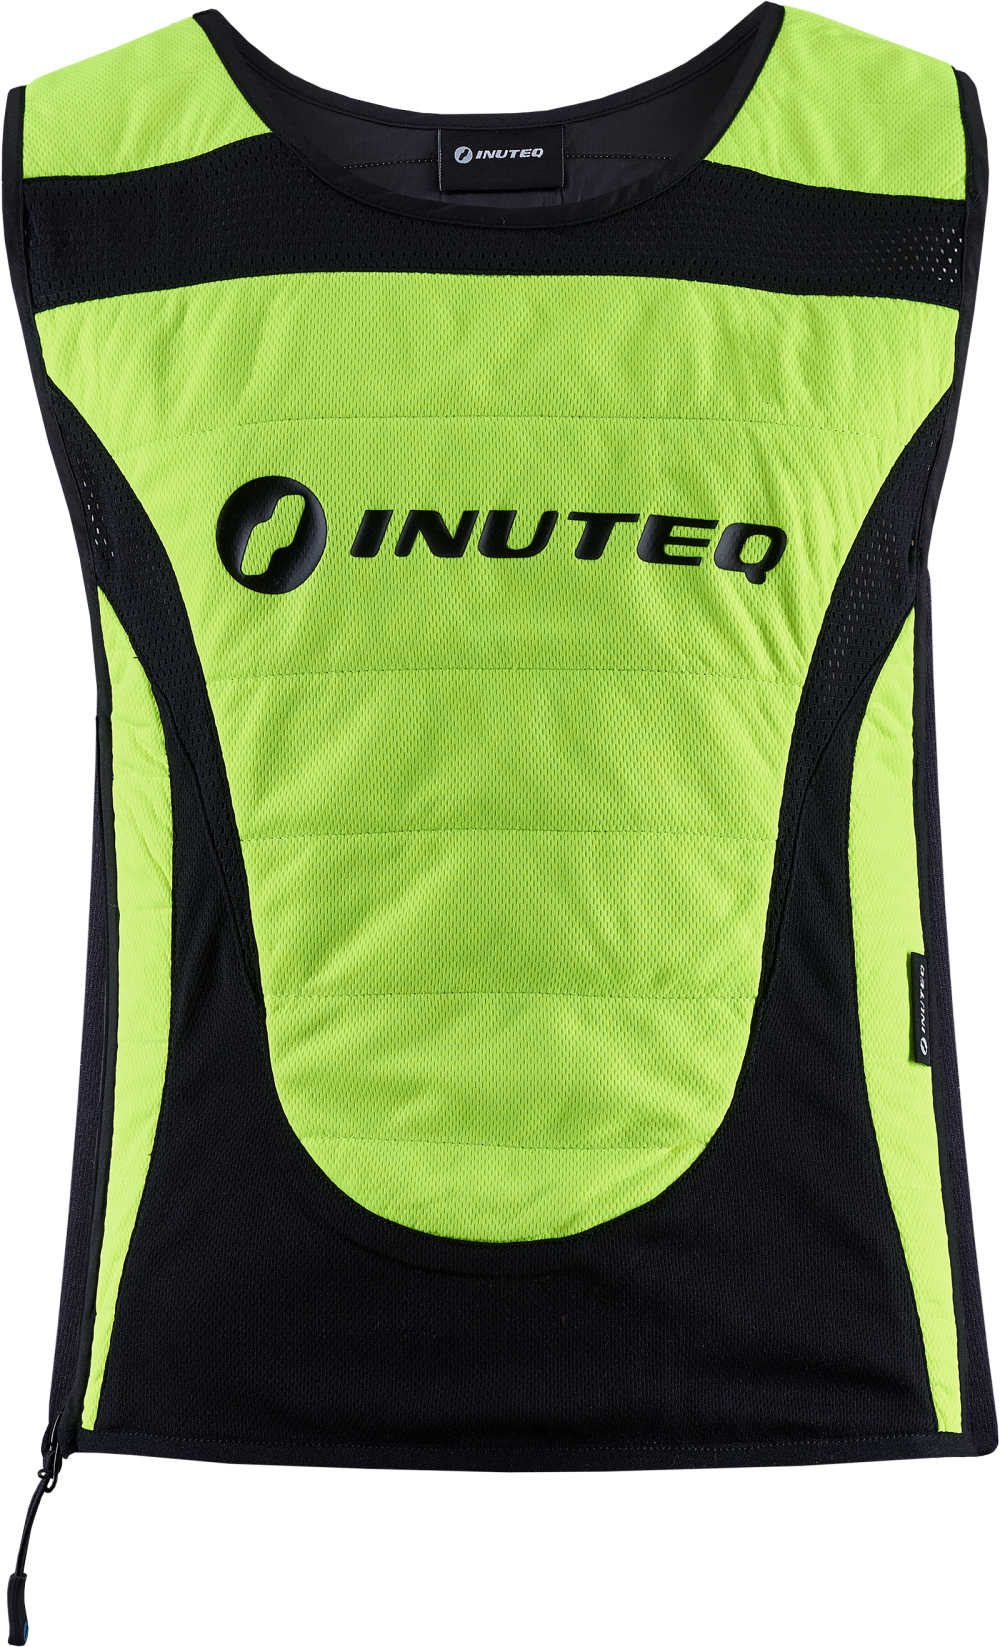 INUTEQ BODYCOOL PRO-A LIME